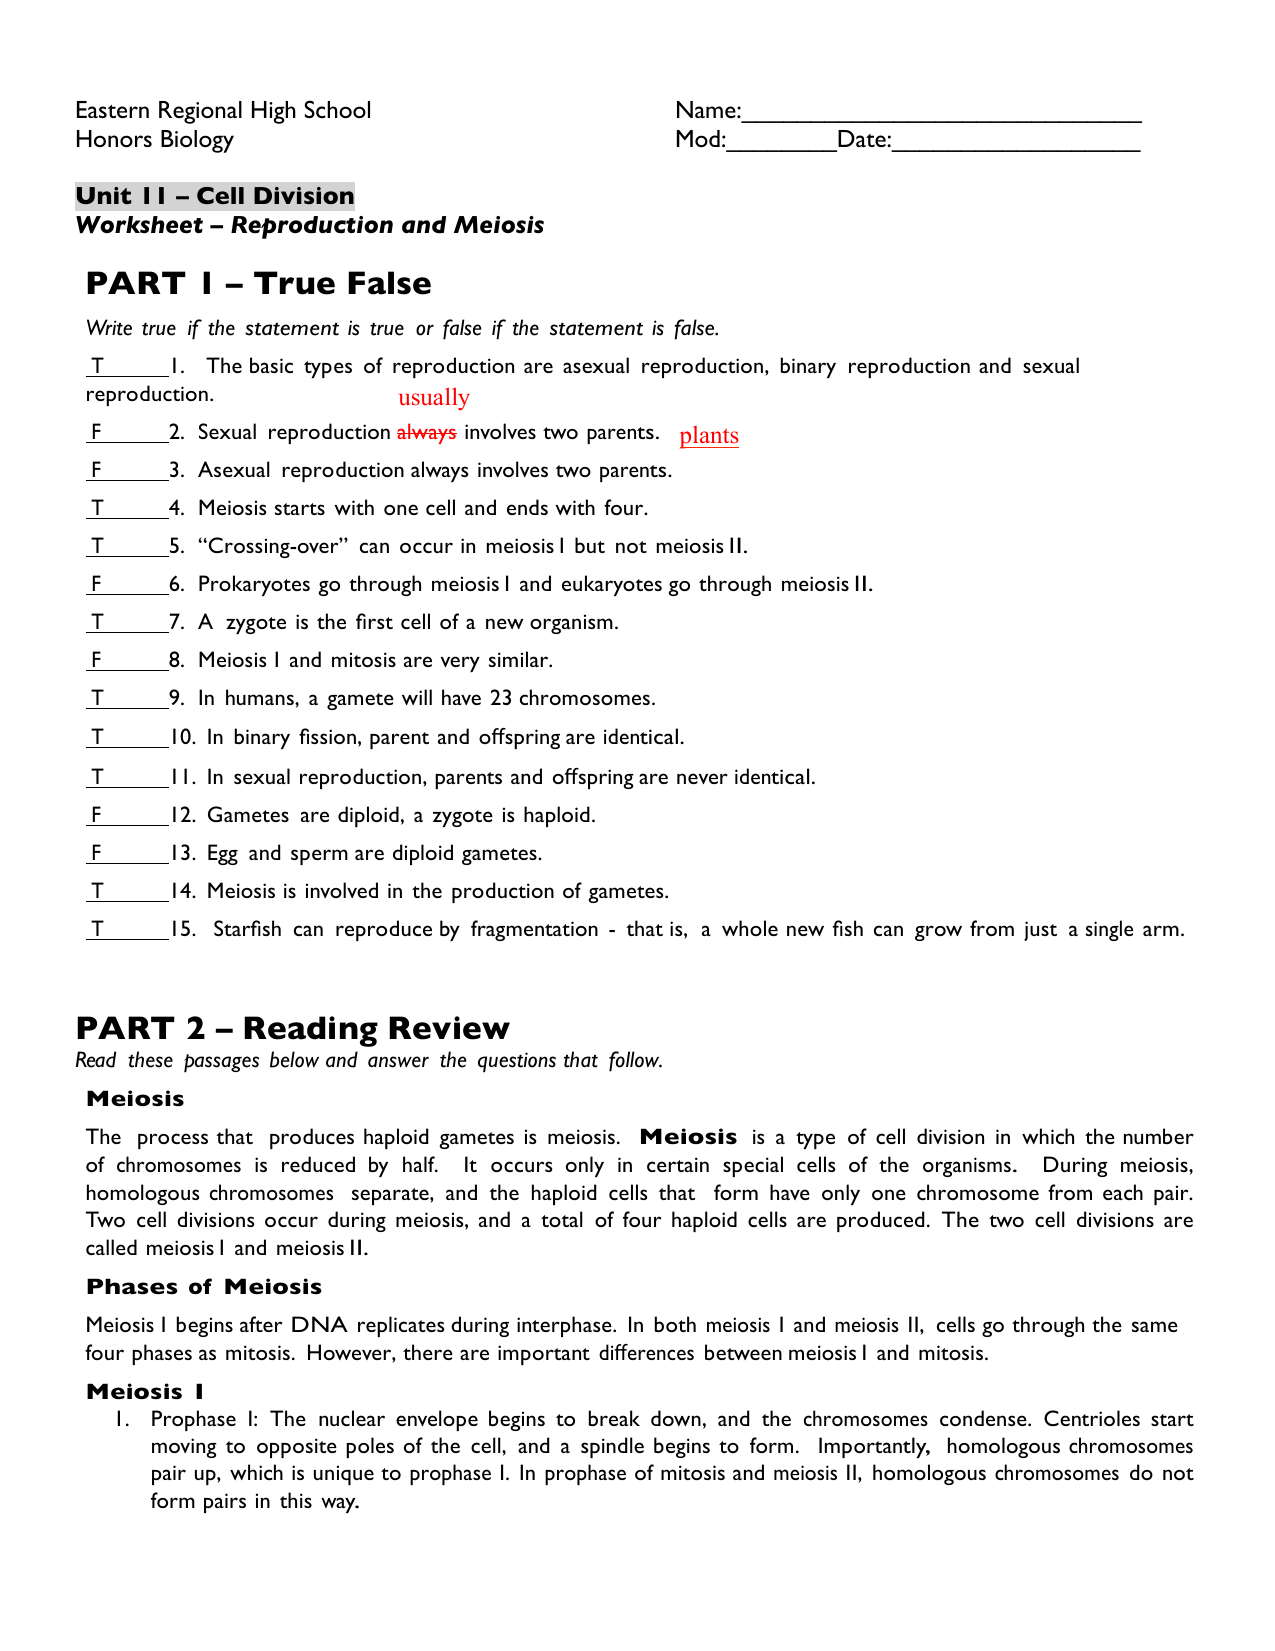 Worksheet Meiosis Vocabulary Worksheet Grass Fedjp Worksheet Study Site